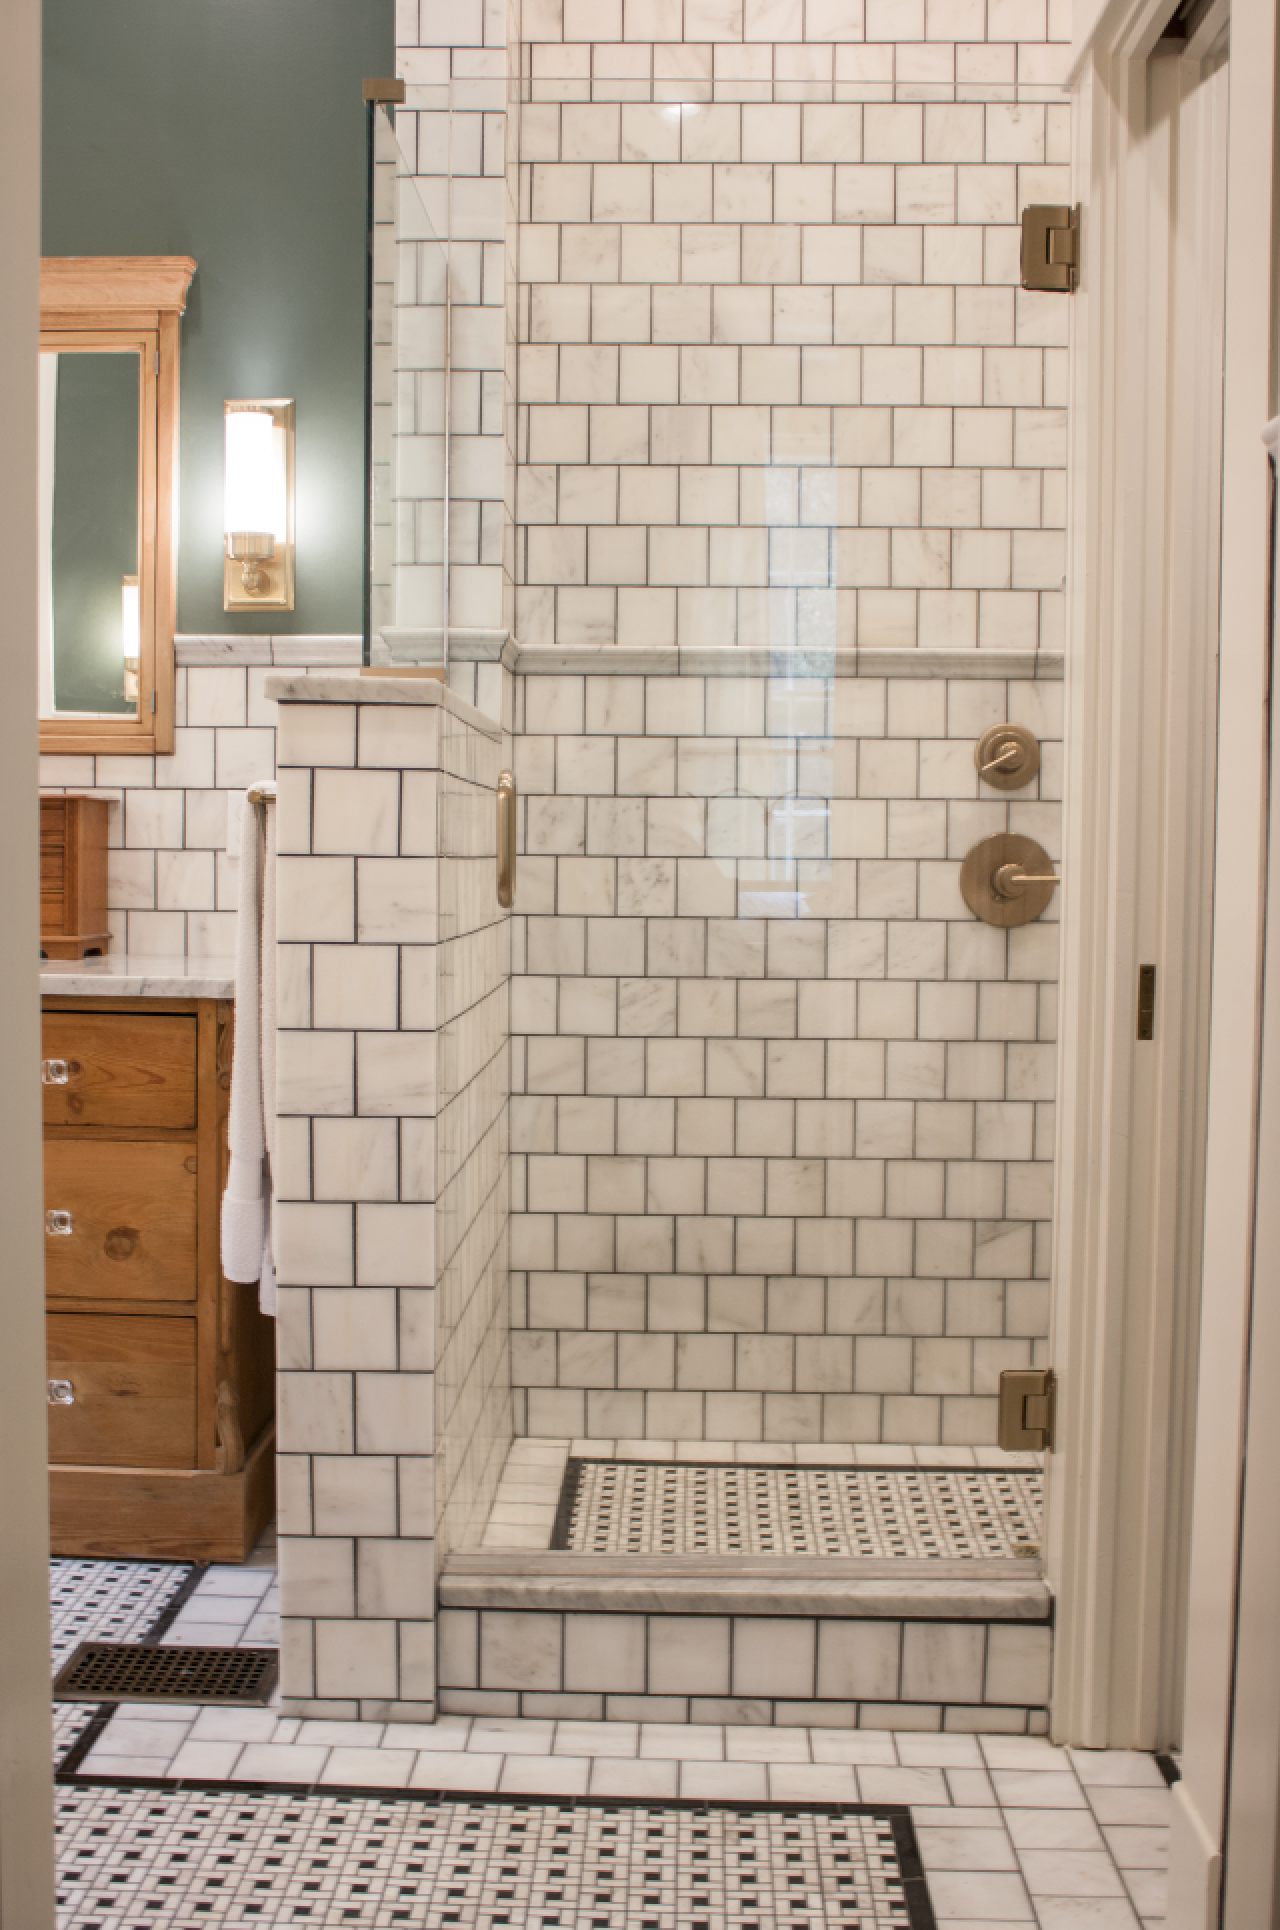 2,848 The New Bathroom. | Grey marble tile, Erin napier and Plumbing ...